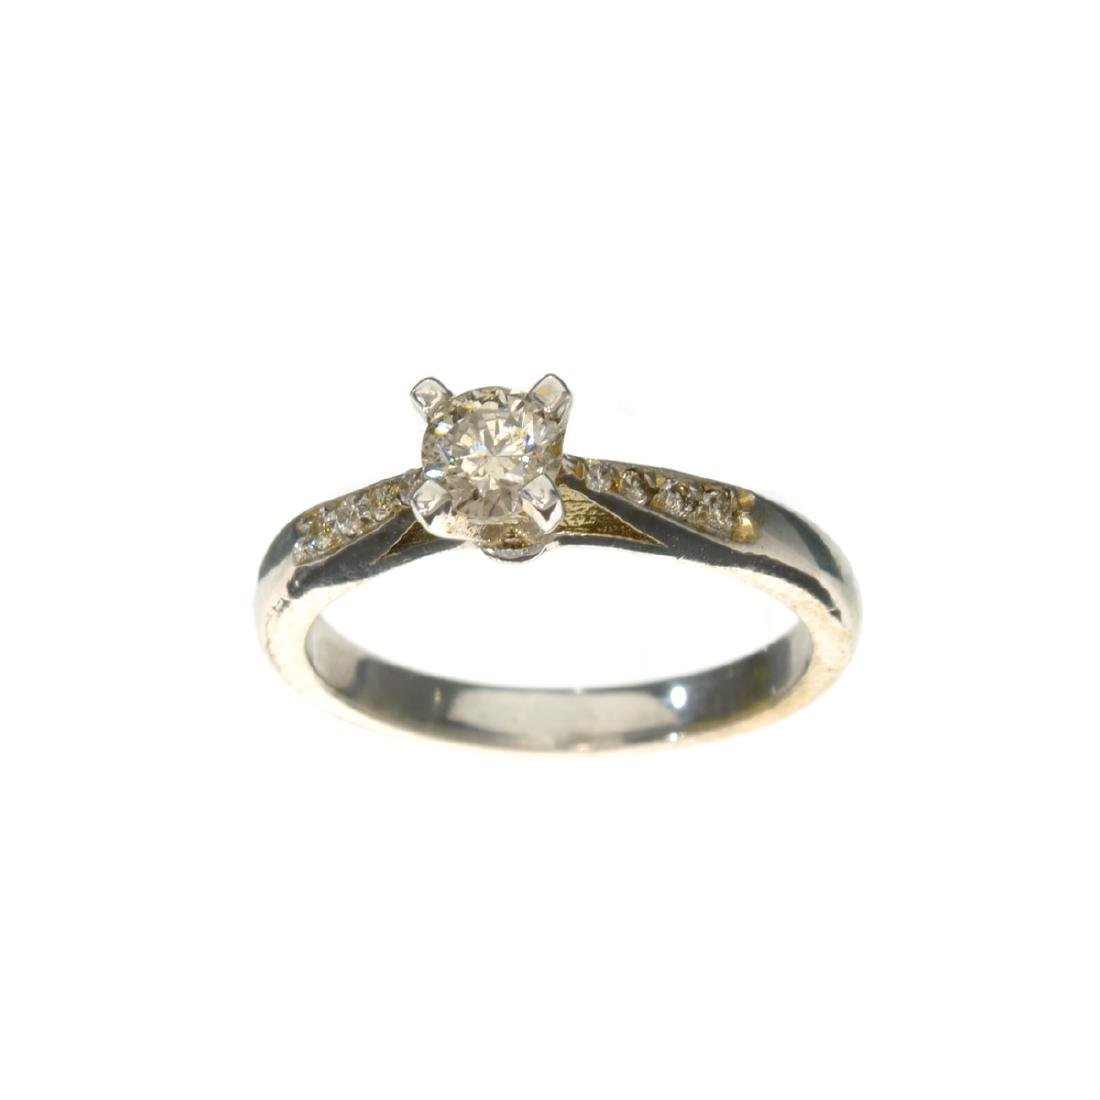 APP: 1.8k 14 kt. White Gold, 0.33CT Round Cut Diamond